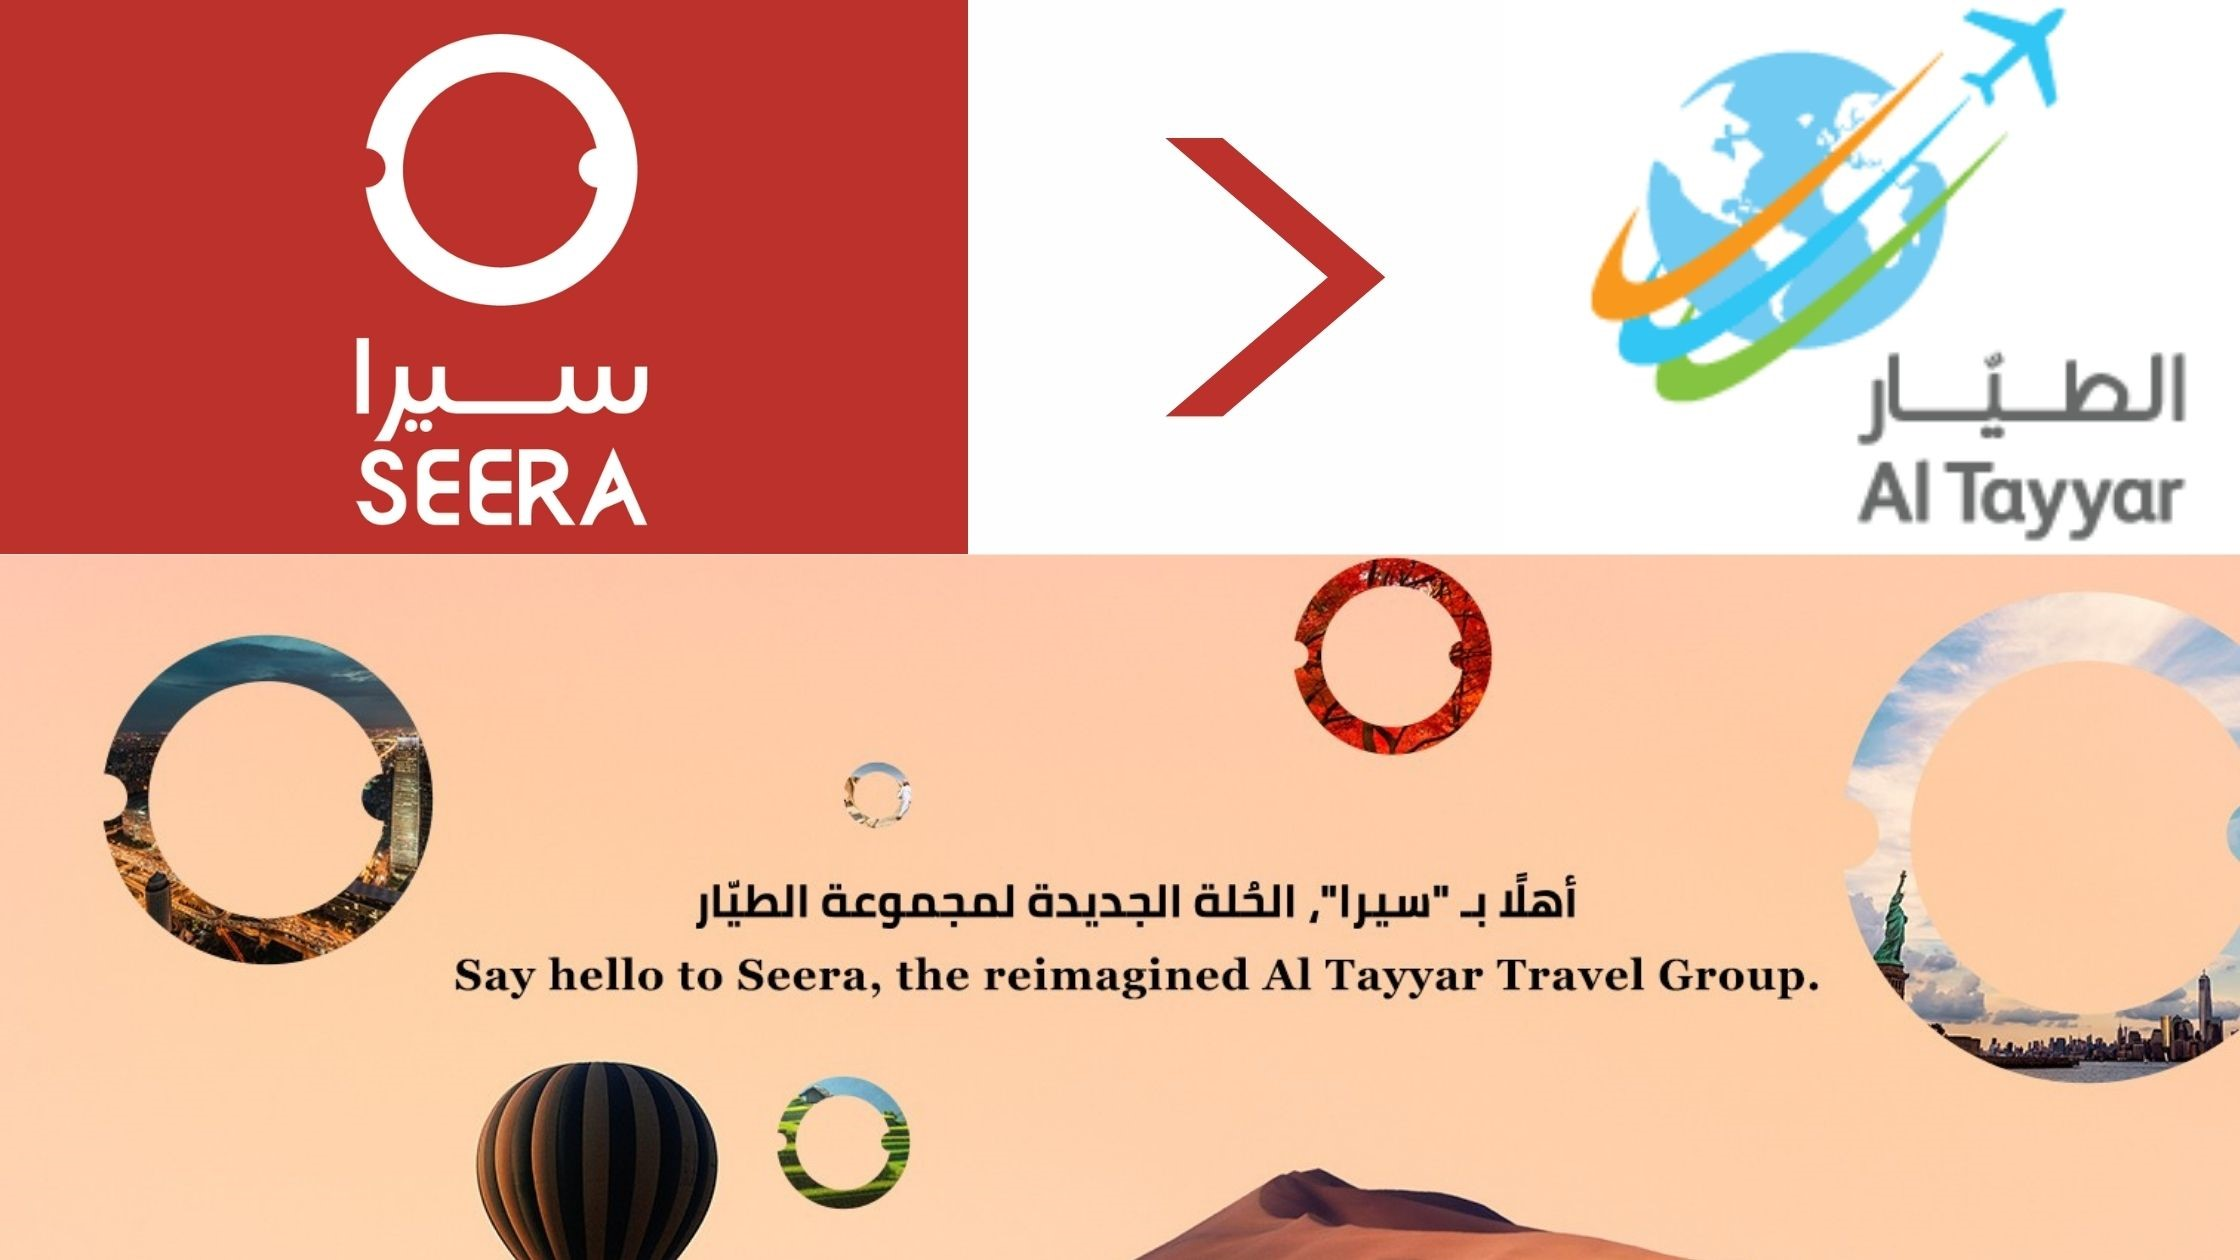 Al-Tayyar-Travel-Group-To-Seera